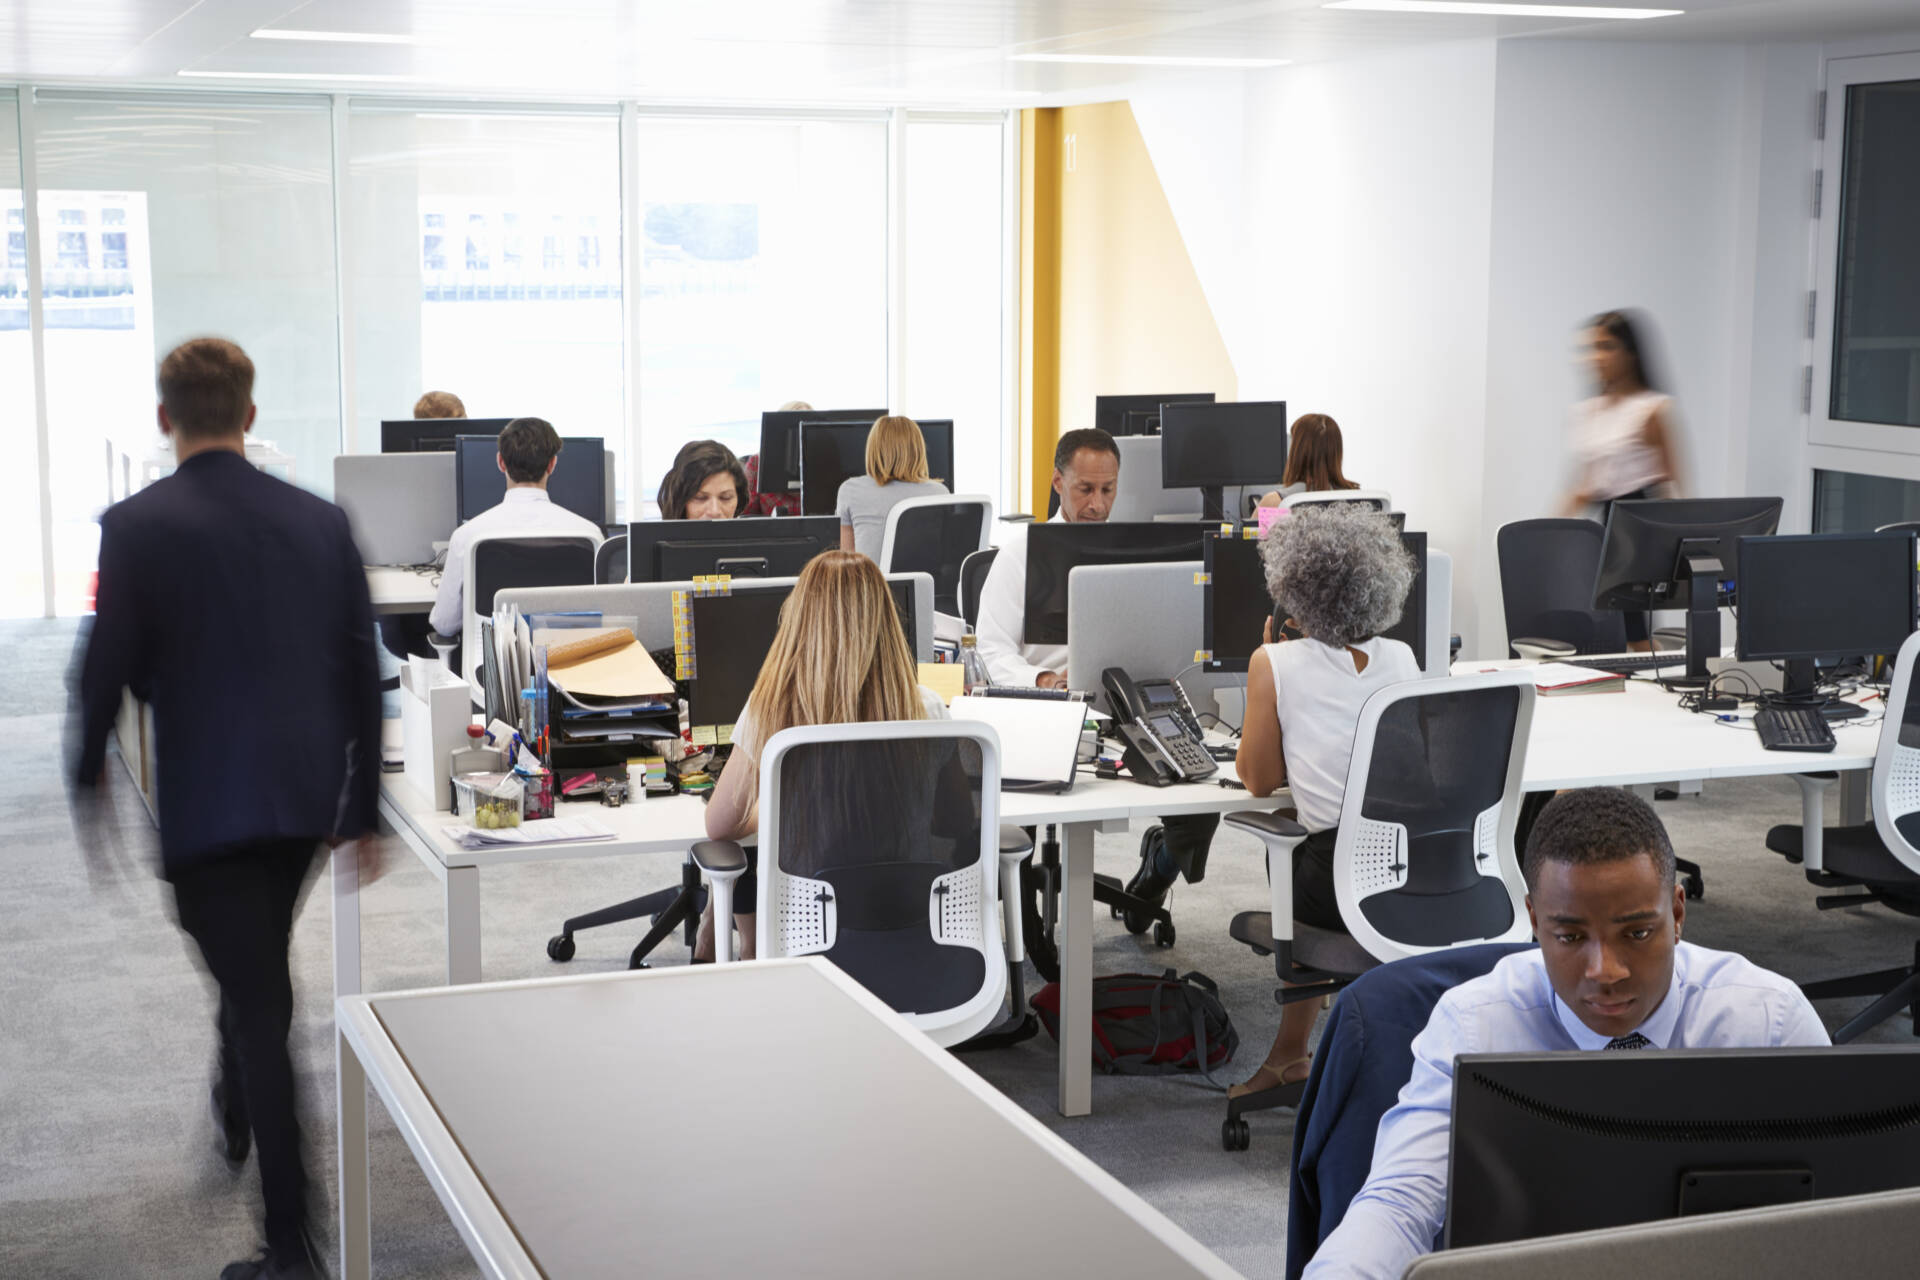 image of office workers for blog about the harm in sitting